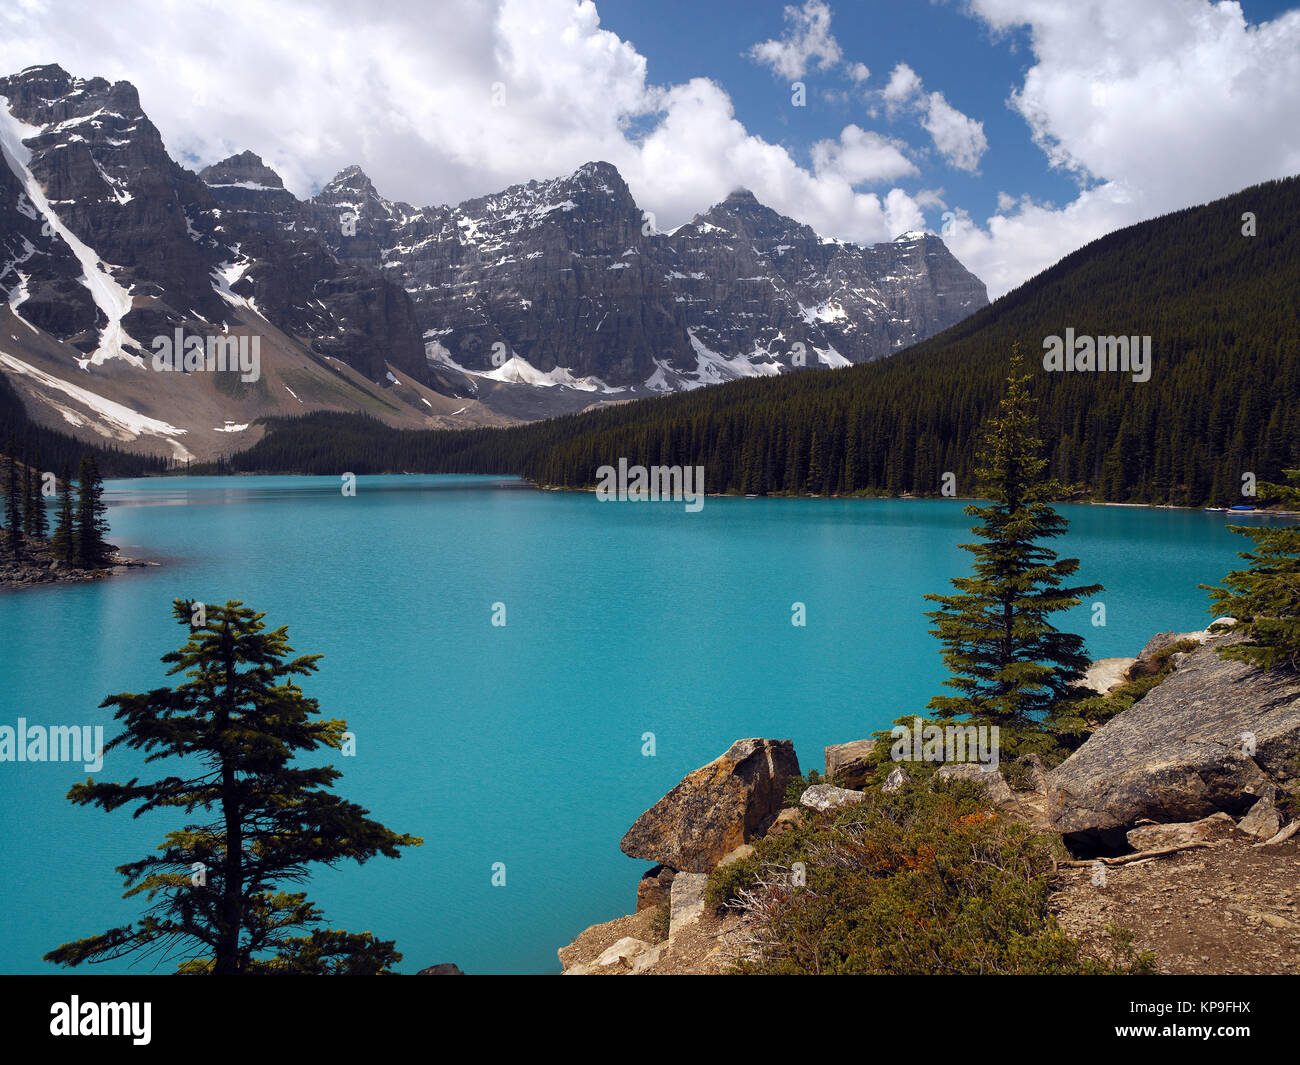 Turquoise waters of Moraine Lake in the Rocky Mountains. Banff National Park in British Columbia, western Canada. - Stock Image